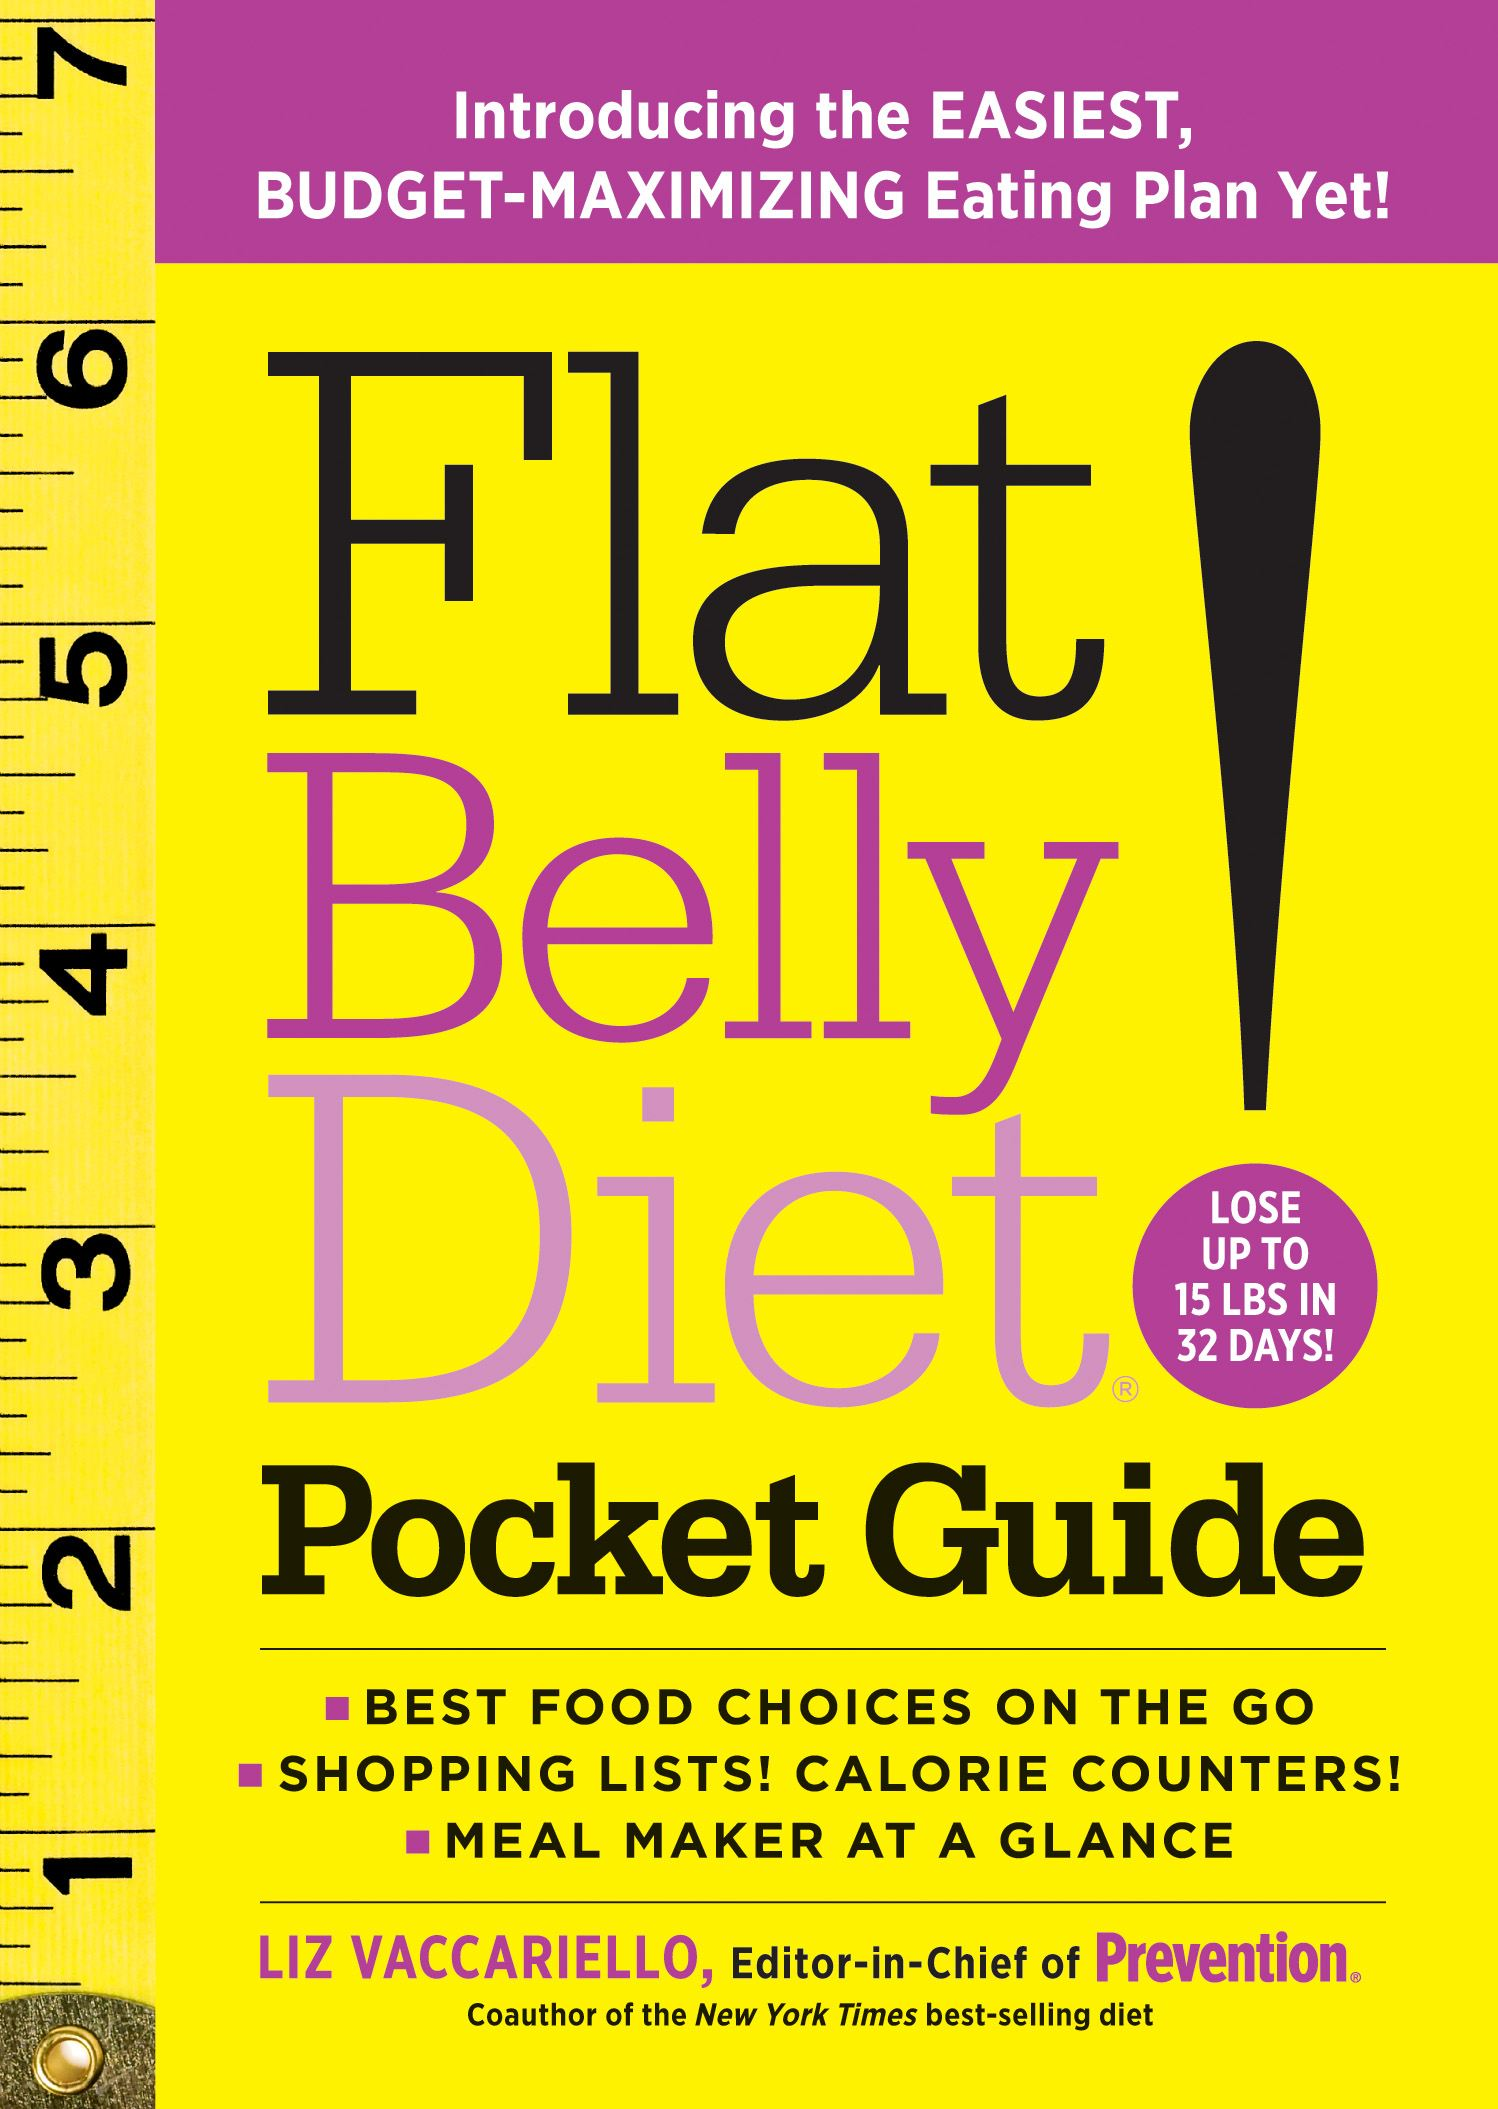 Flat Belly Diet! Pocket Guide: Introducing the Easiest, Budget-Maximizing Eating Plan Yet By: Liz Vaccariello